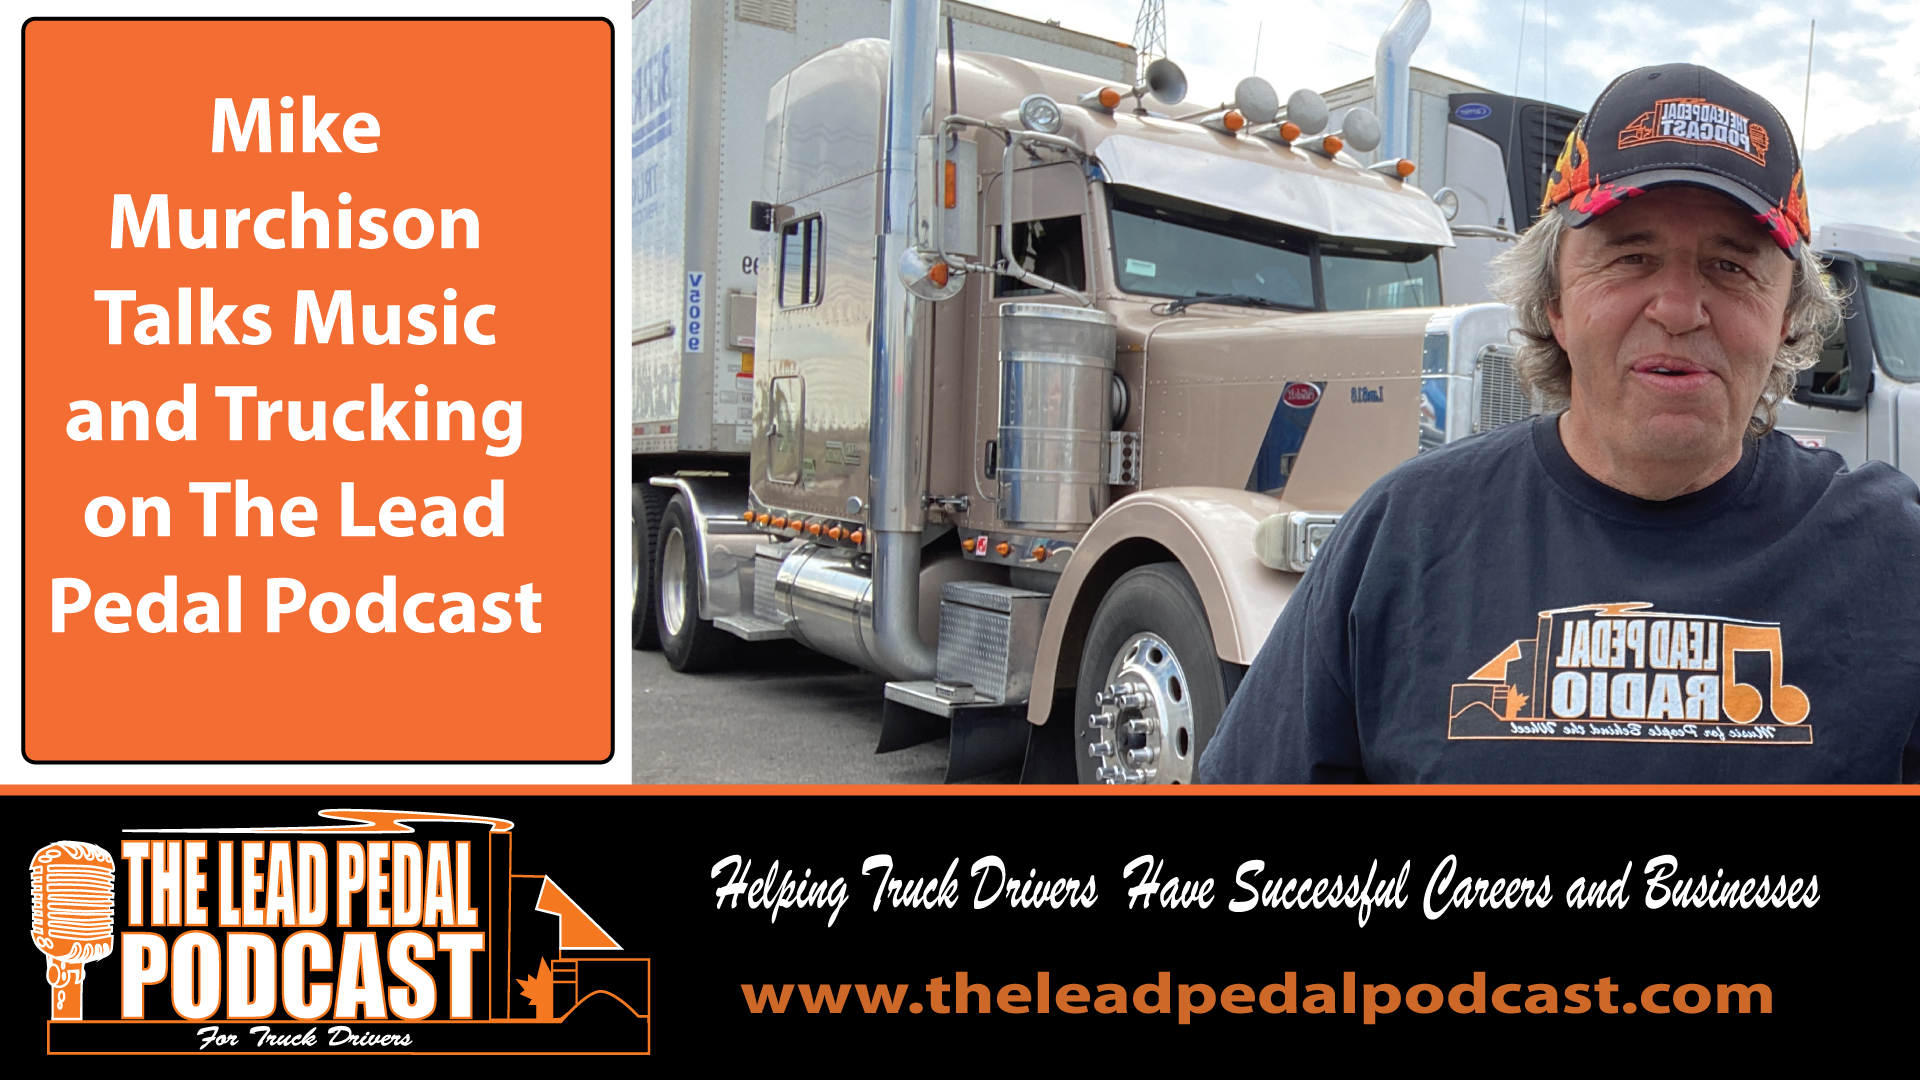 LP656 Trucking and Music with Mike Murchison